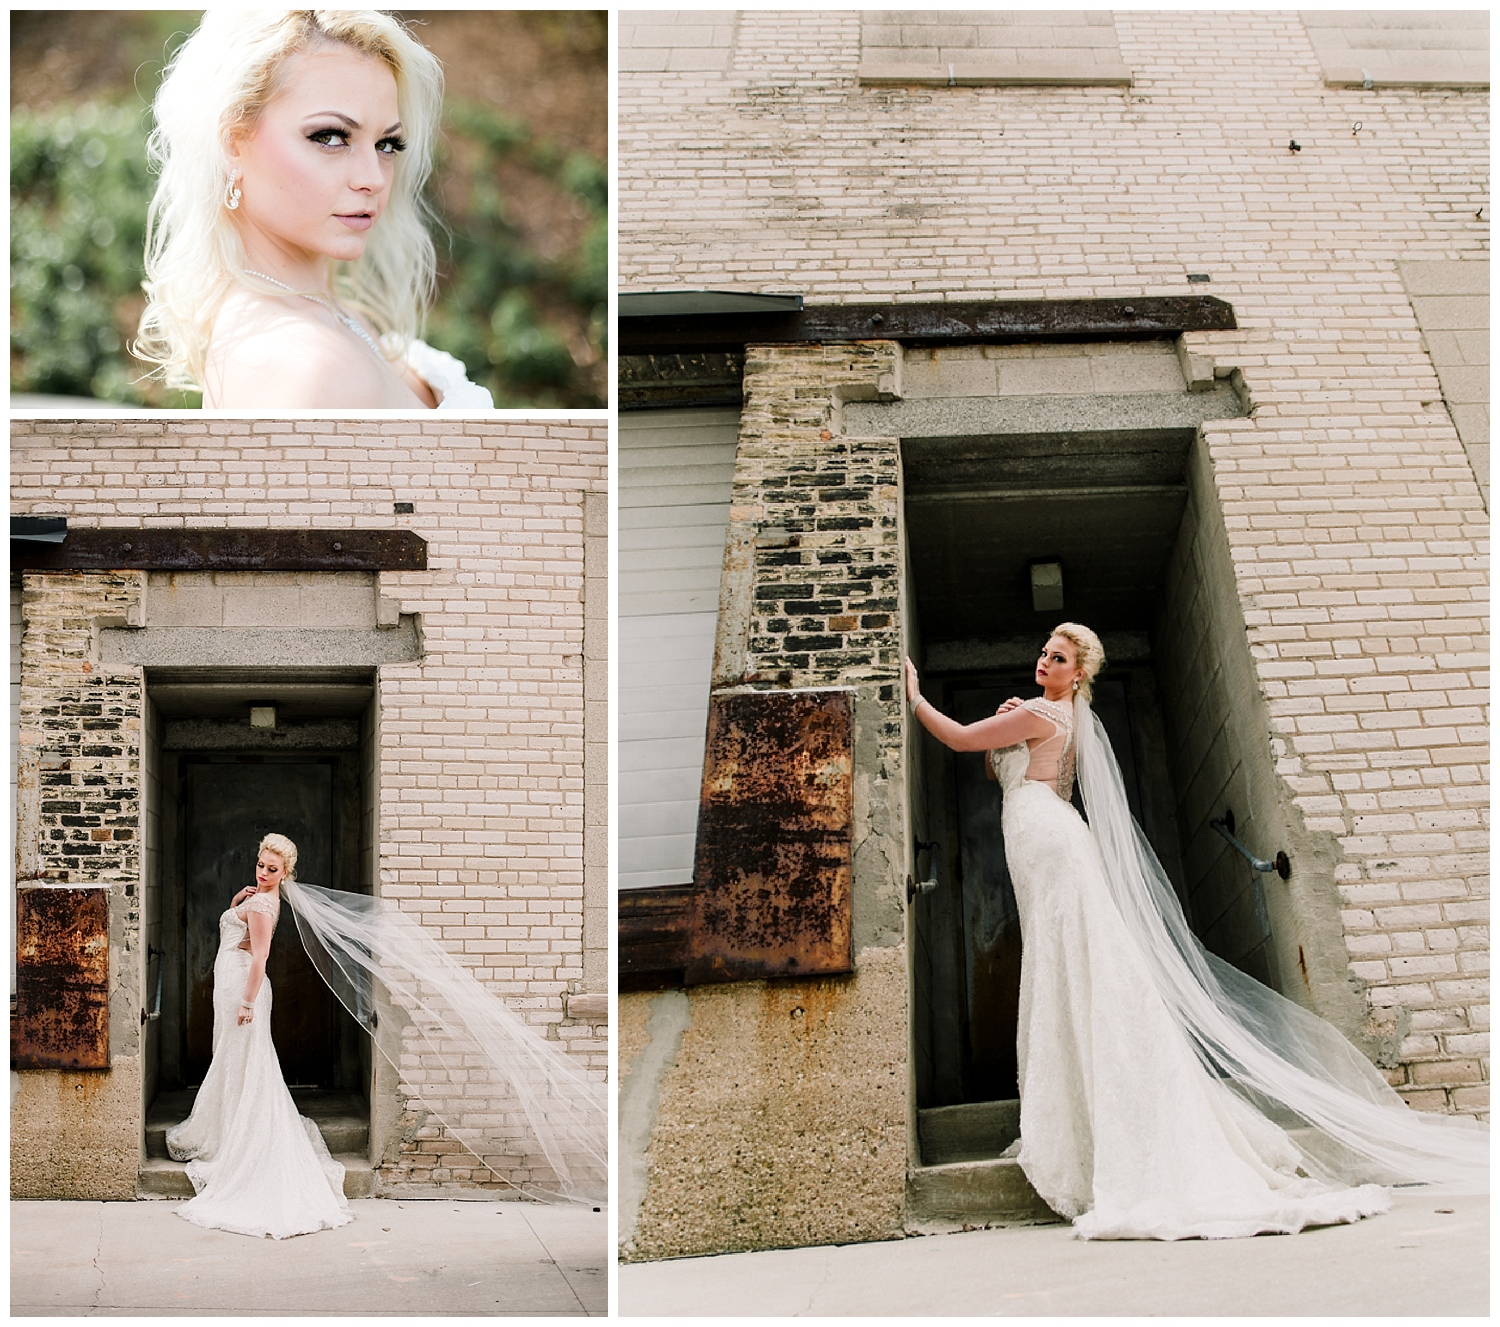 Bridal editorial fierceness.